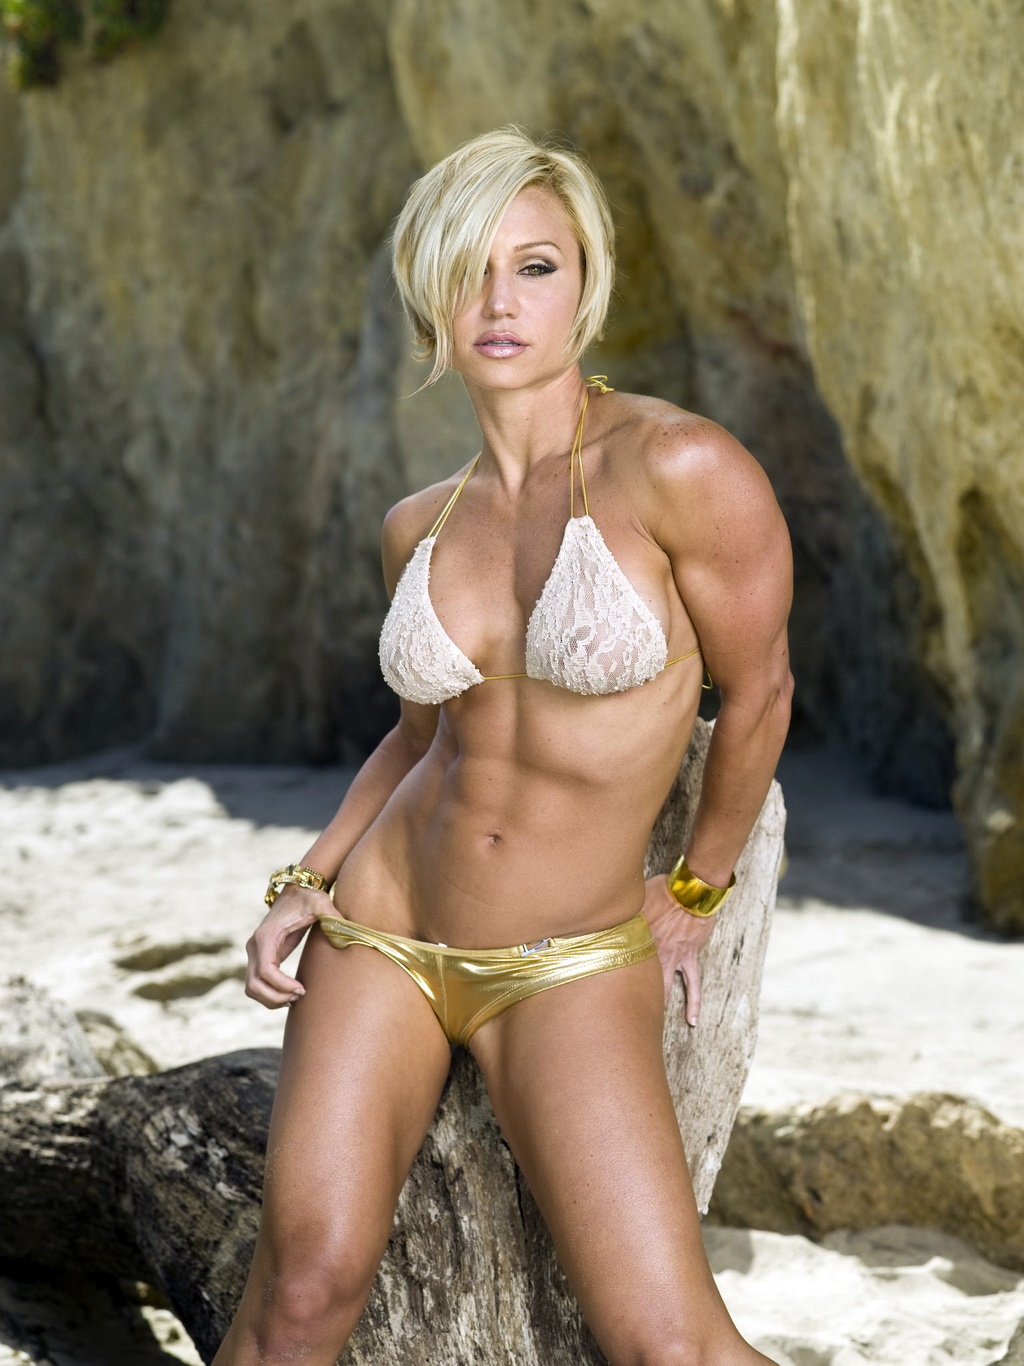 Fitness Model Jamie Eason Hot Bikini Photoshoot-3326